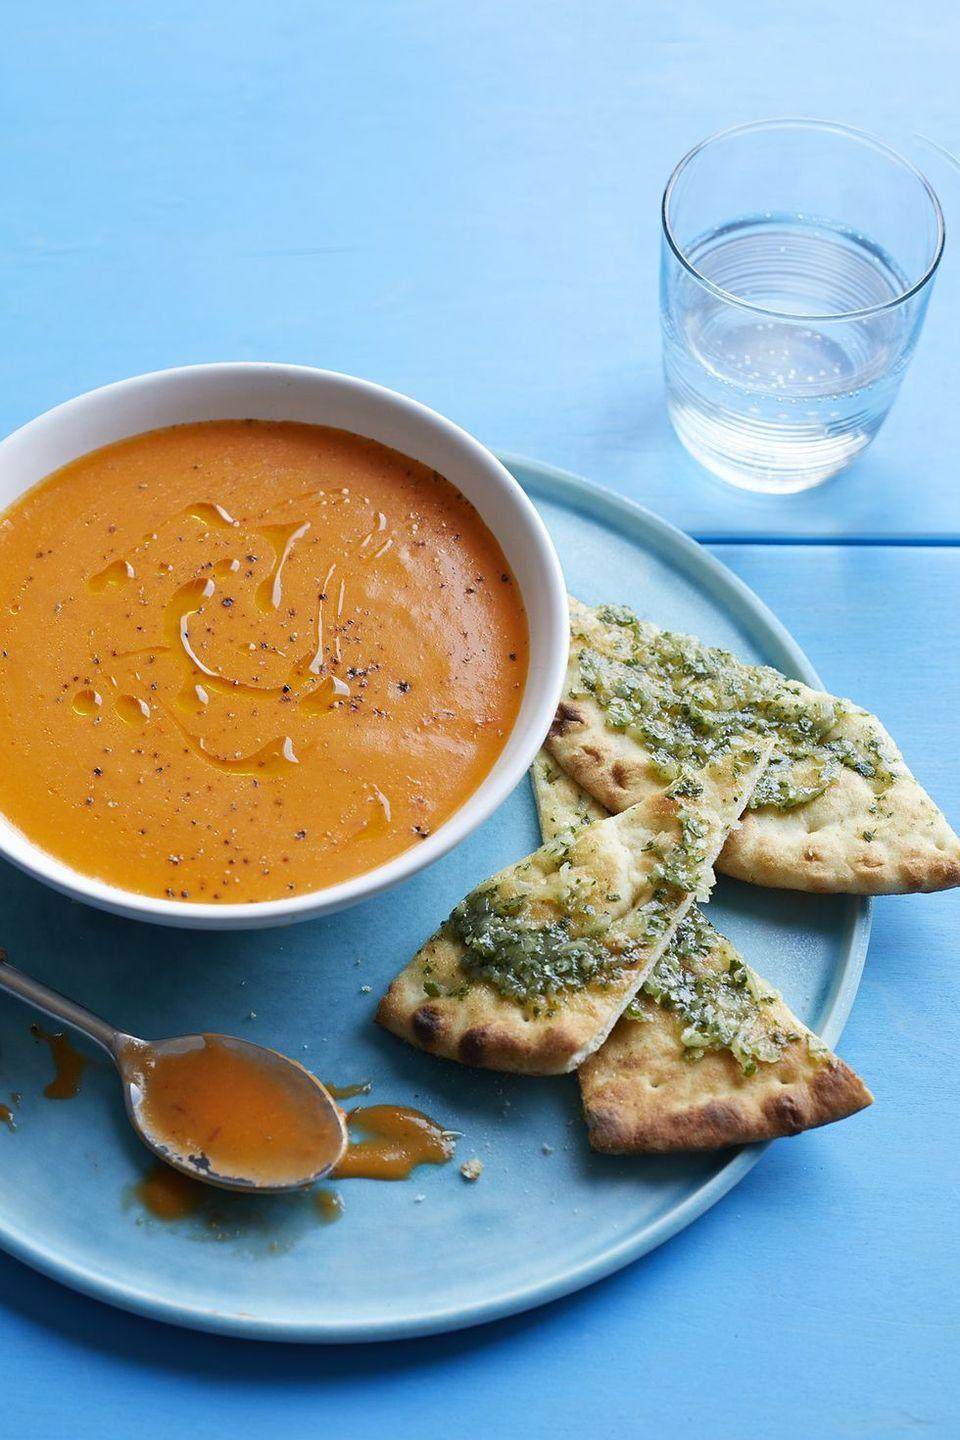 """<p>It takes less than half an hour to make this spiced tomato soup. Smother some fresh herbed butter on flatbread is the perfect accompaniment.</p><p><strong><em><a href=""""https://www.womansday.com/food-recipes/food-drinks/recipes/a59774/spiced-tomato-soup-flatbread-recipe/"""" rel=""""nofollow noopener"""" target=""""_blank"""" data-ylk=""""slk:Get the Spiced Tomato Soup with Flatbread recipe."""" class=""""link rapid-noclick-resp"""">Get the Spiced Tomato Soup with Flatbread recipe. </a></em></strong></p>"""